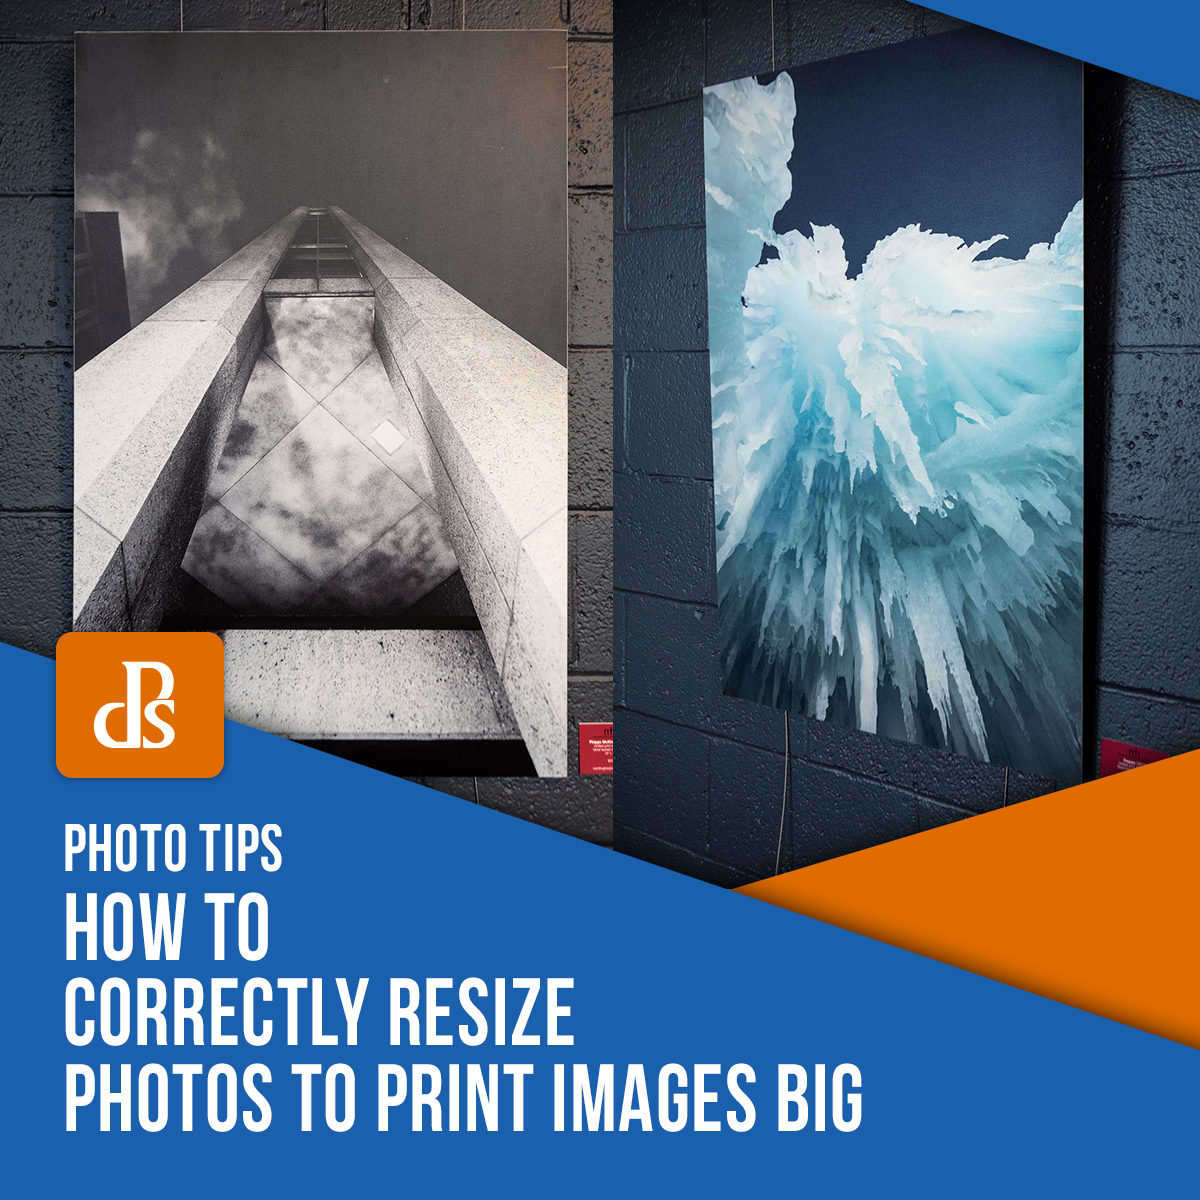 https://i1.wp.com/digital-photography-school.com/wp-content/uploads/2020/03/dps-resize-images-to-print-images-big.jpg?ssl=1